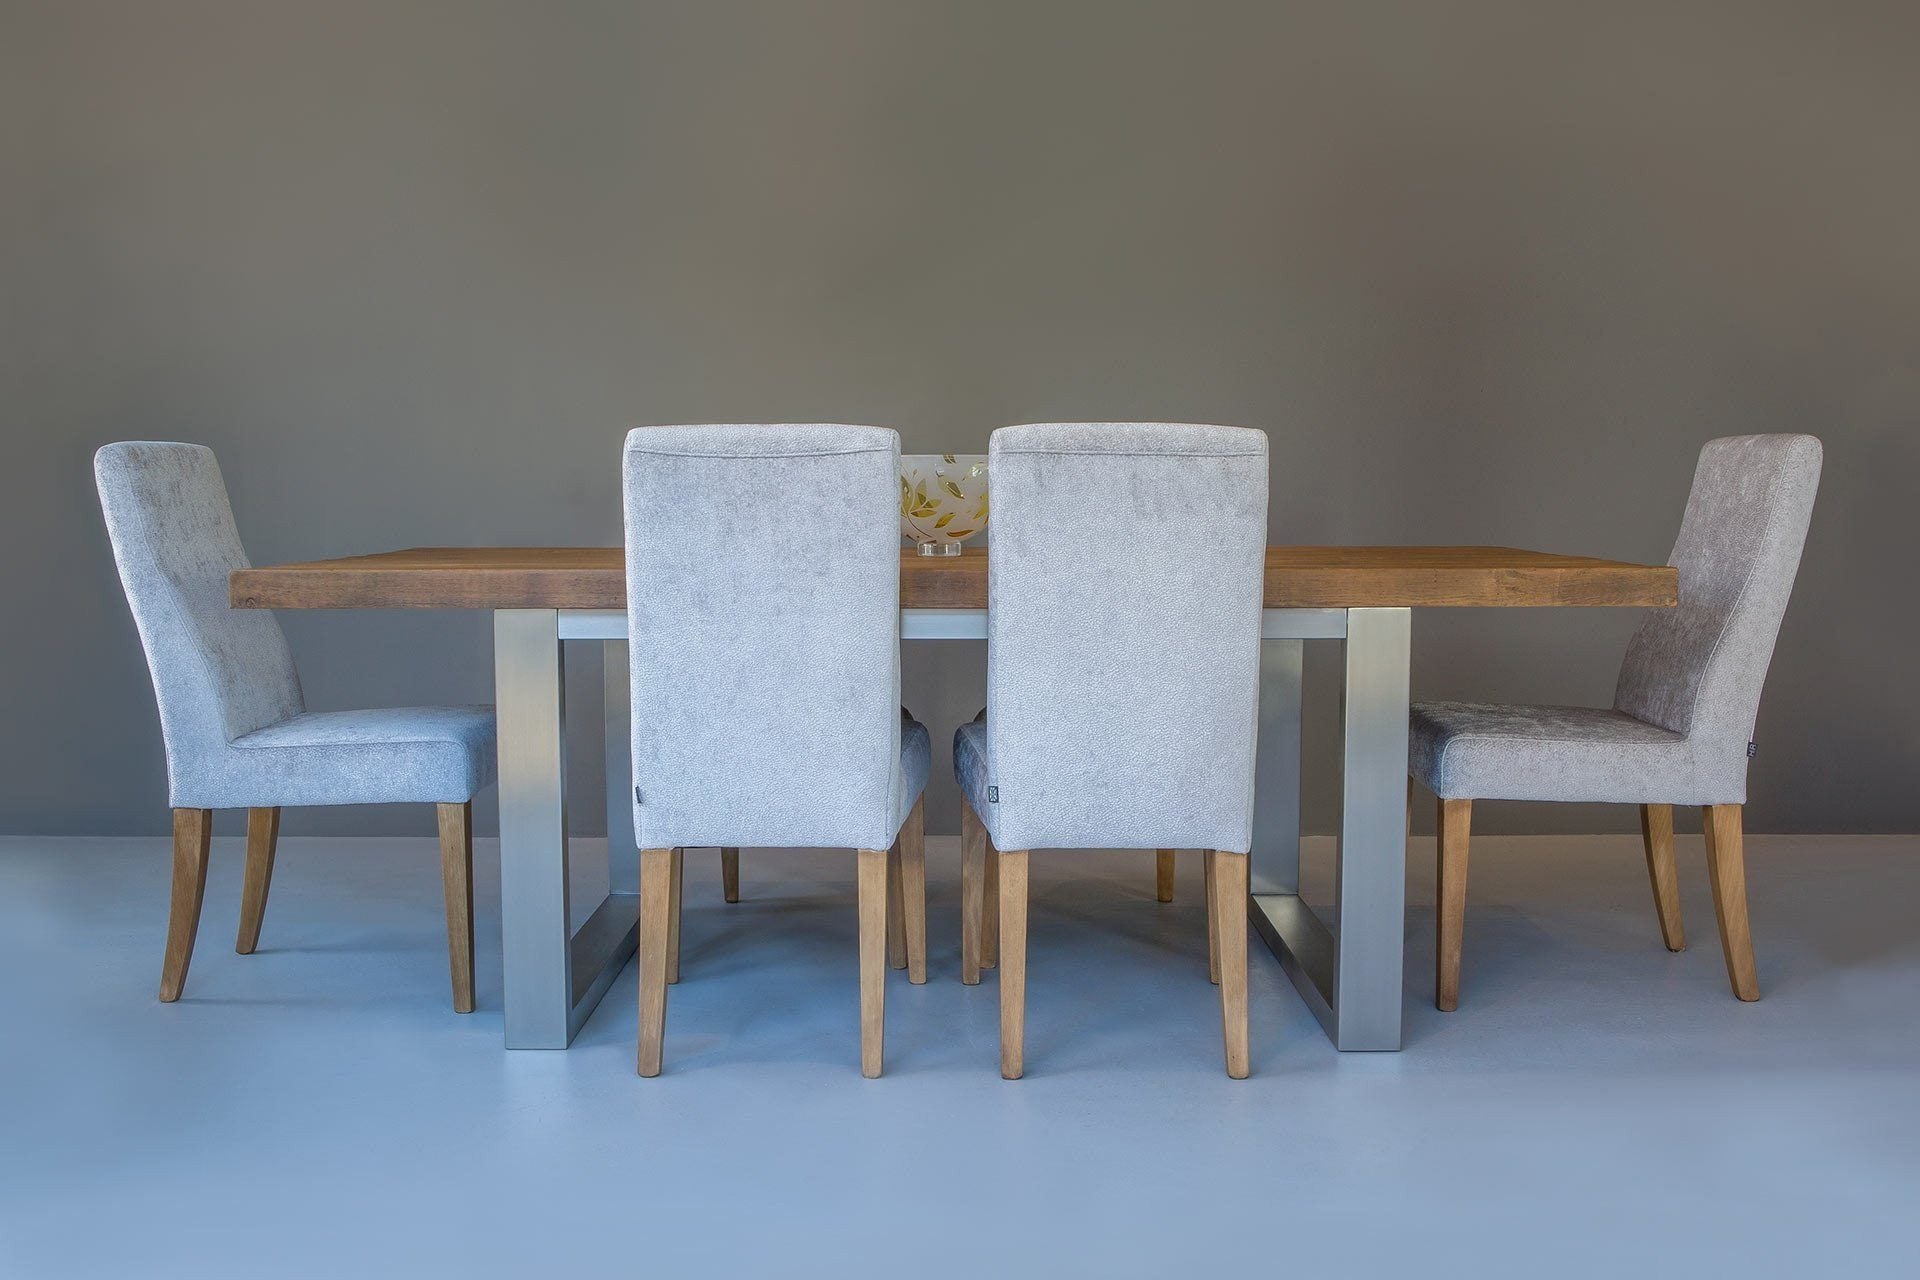 Warm 223cm Long Overhang Table with Annabel Chairs (Sold Separately)